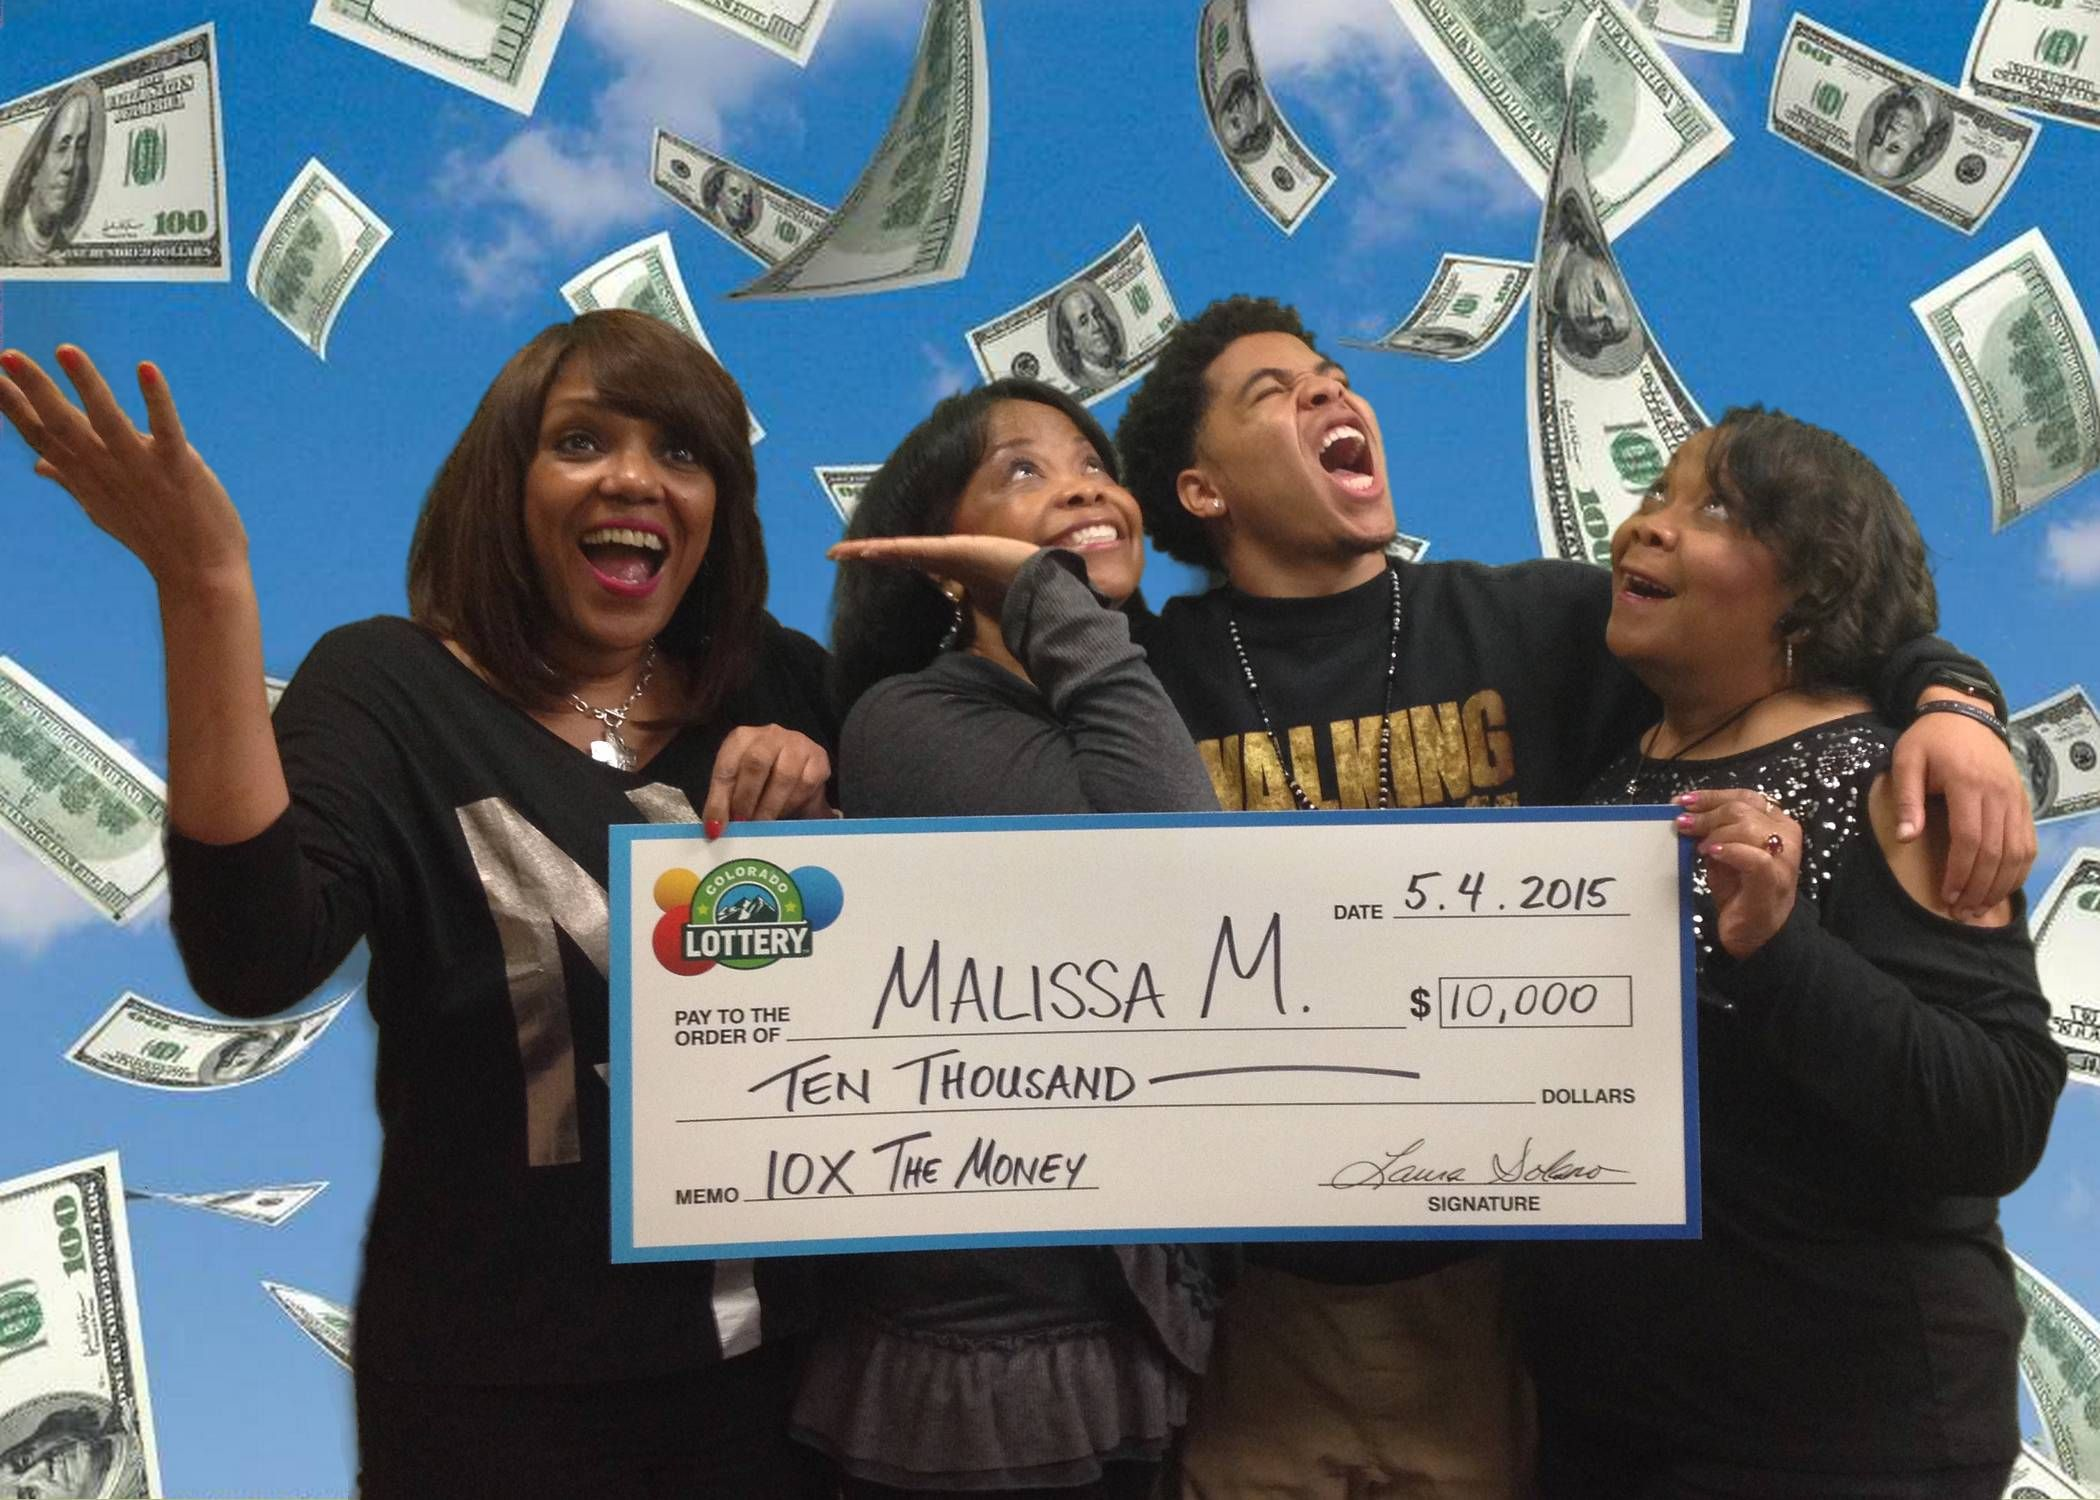 The whole gang showed up to help Malissa M. from Aurora claim her $10,000 Top Prize for 10X The Money!  This game has 100 Top Prizes.